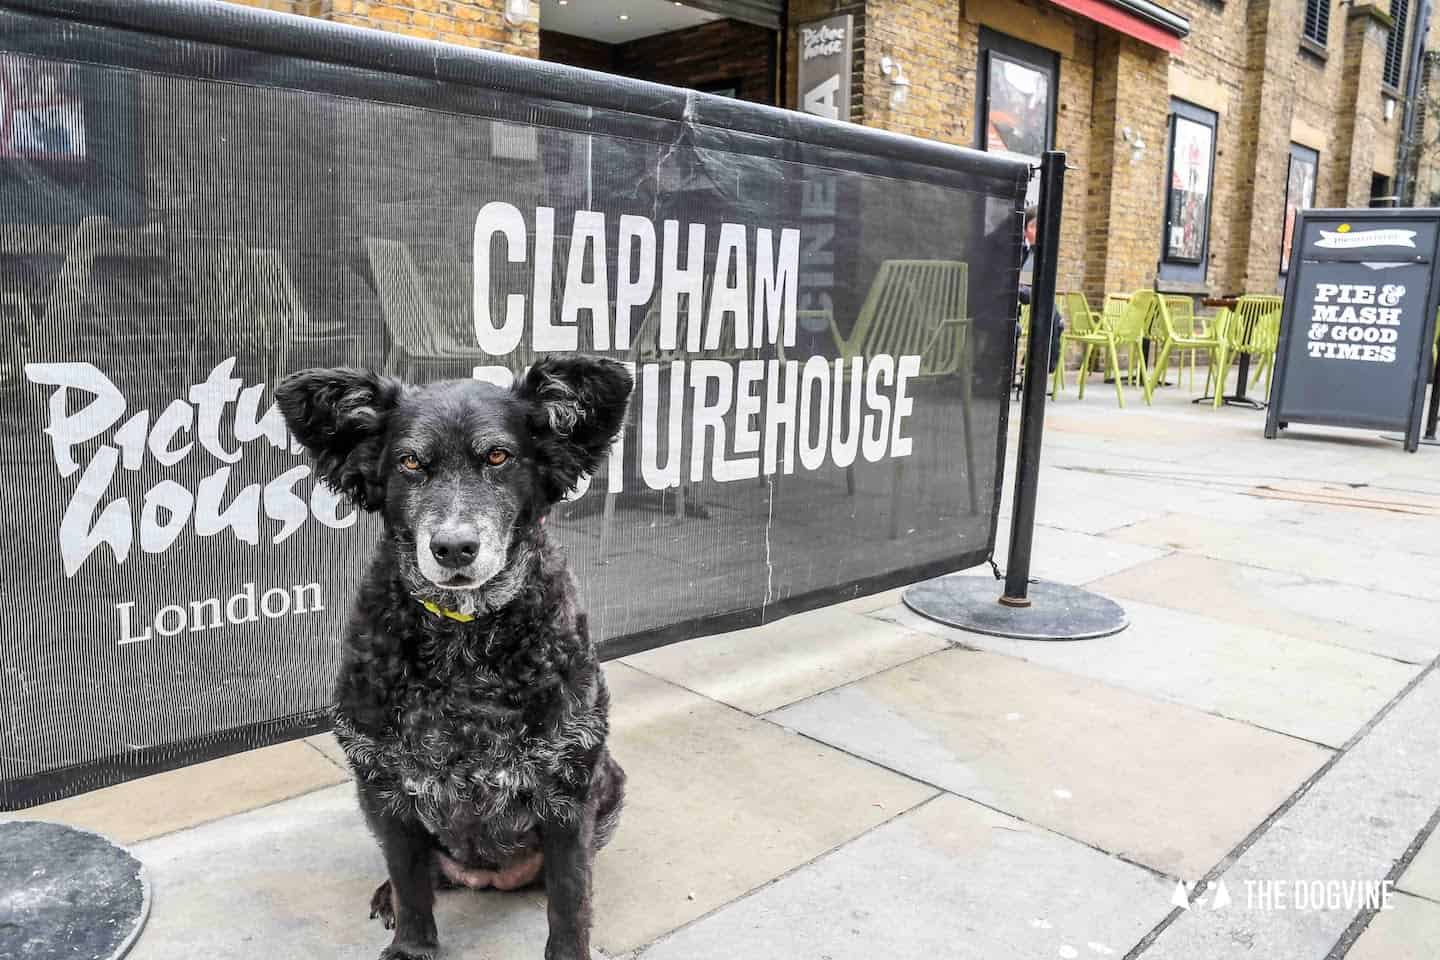 Your London Dog Events Round-up 26-28 May Clapham Picturehouse